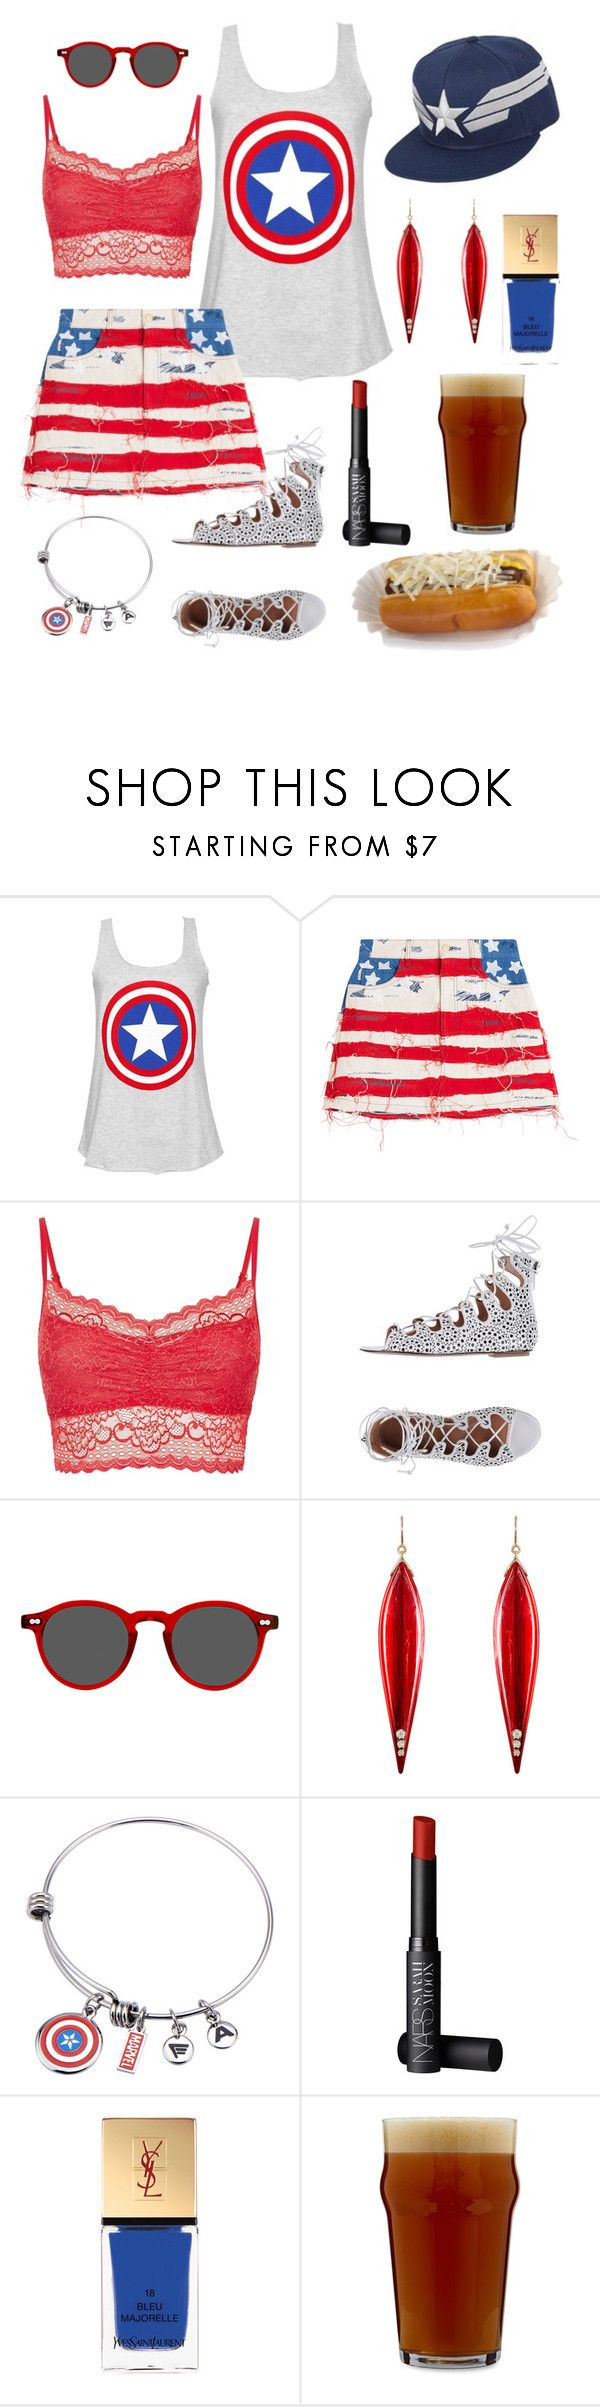 """""""4th of July BBQ as the Captain"""" by pale-readhead ❤ liked on Polyvore featuring Marc Jacobs, Hanky Panky, Alaïa, Moscot, Mark Davis, NARS Cosmetics, Yves Saint Laurent and Bormioli Rocco"""